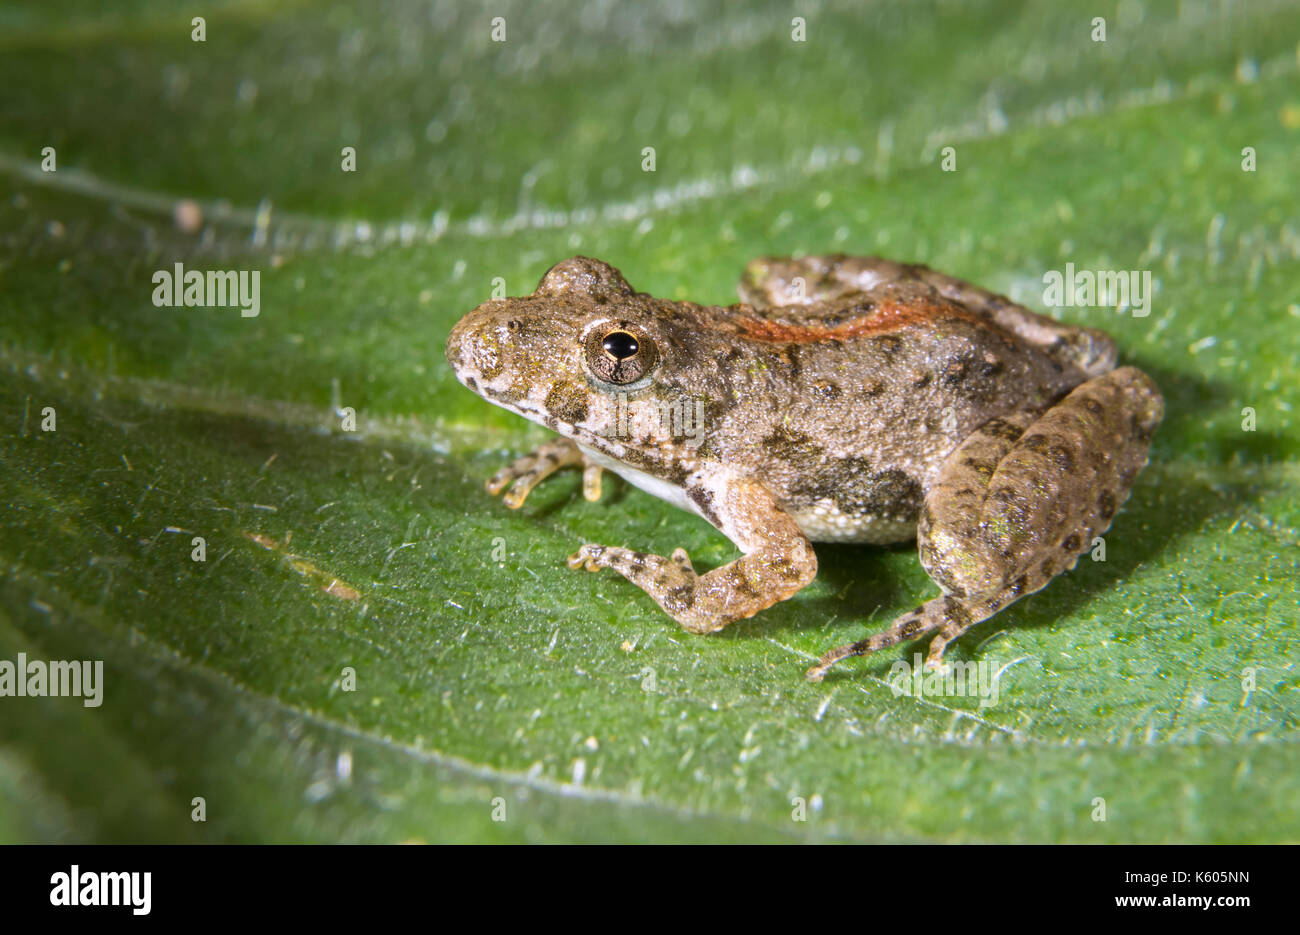 Blanchard's Northern Cricket Frog (Acris crepitans blanchardi) auf einem Blatt, Ames, Iowa, USA Stockbild